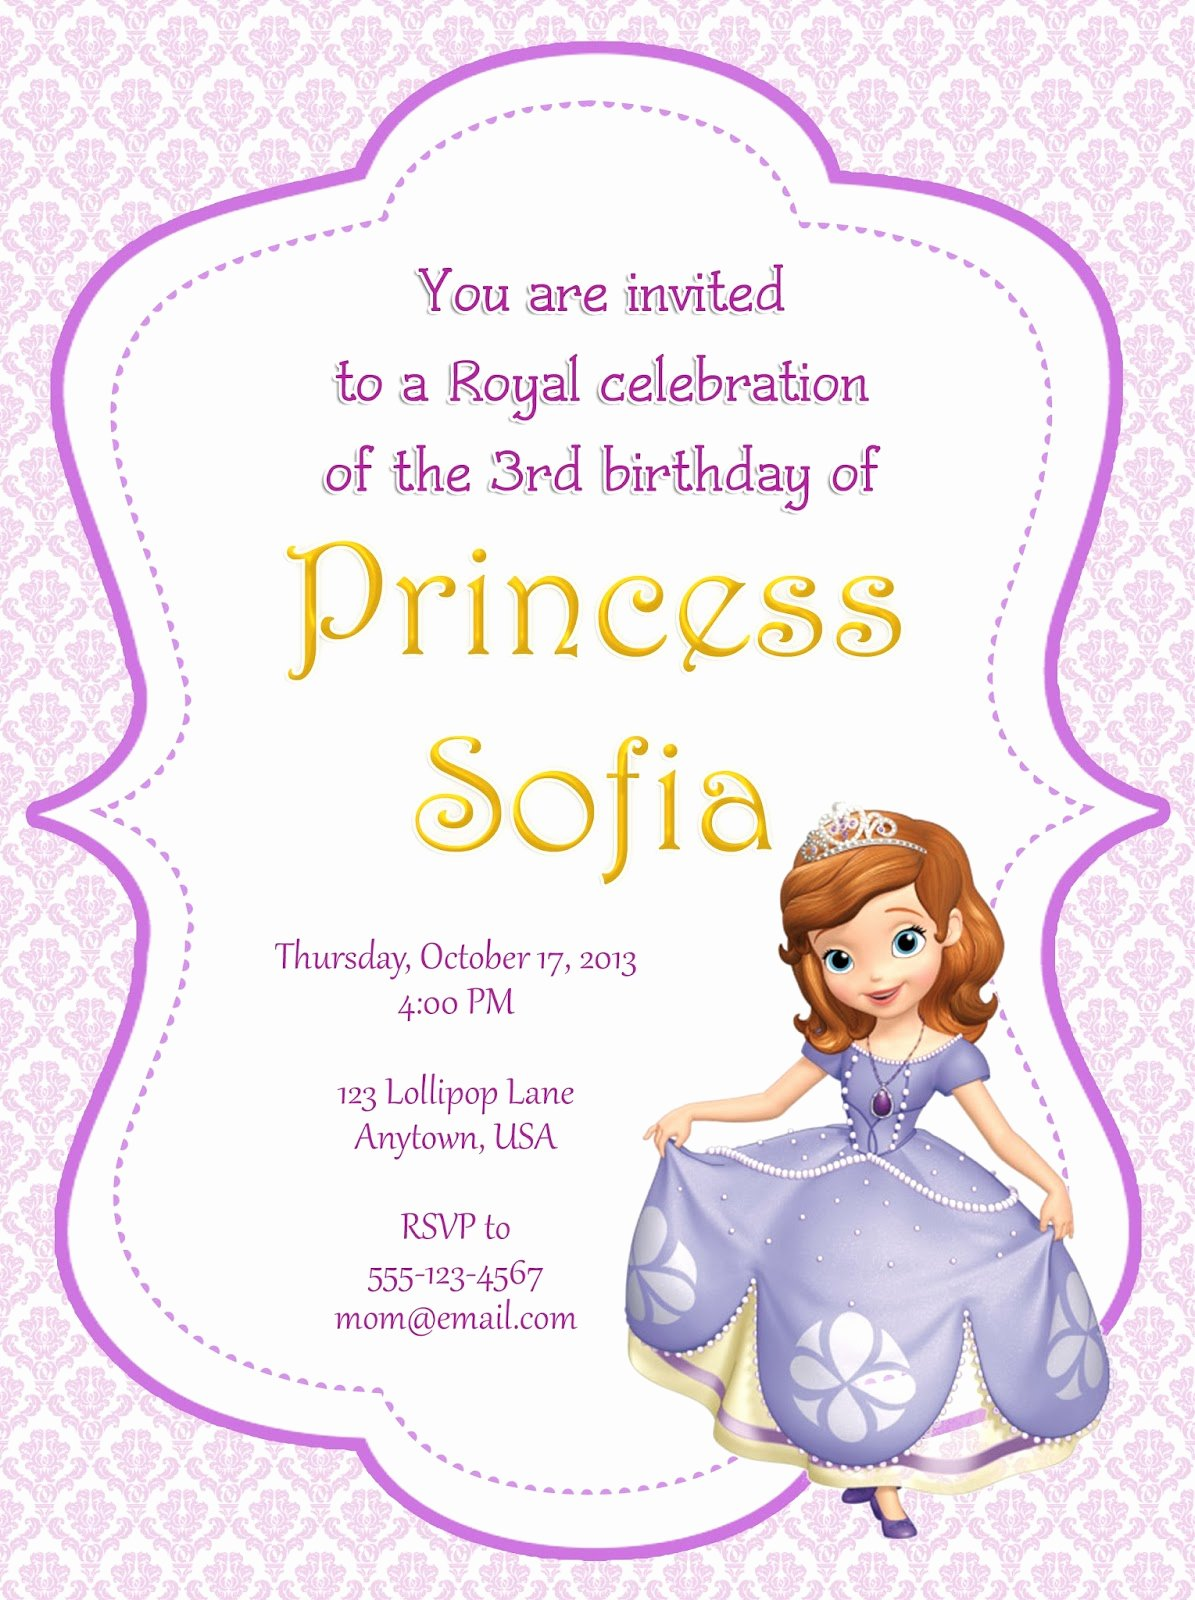 Sofia the First Template Luxury sofia the First Party Invitations sofia the First Party